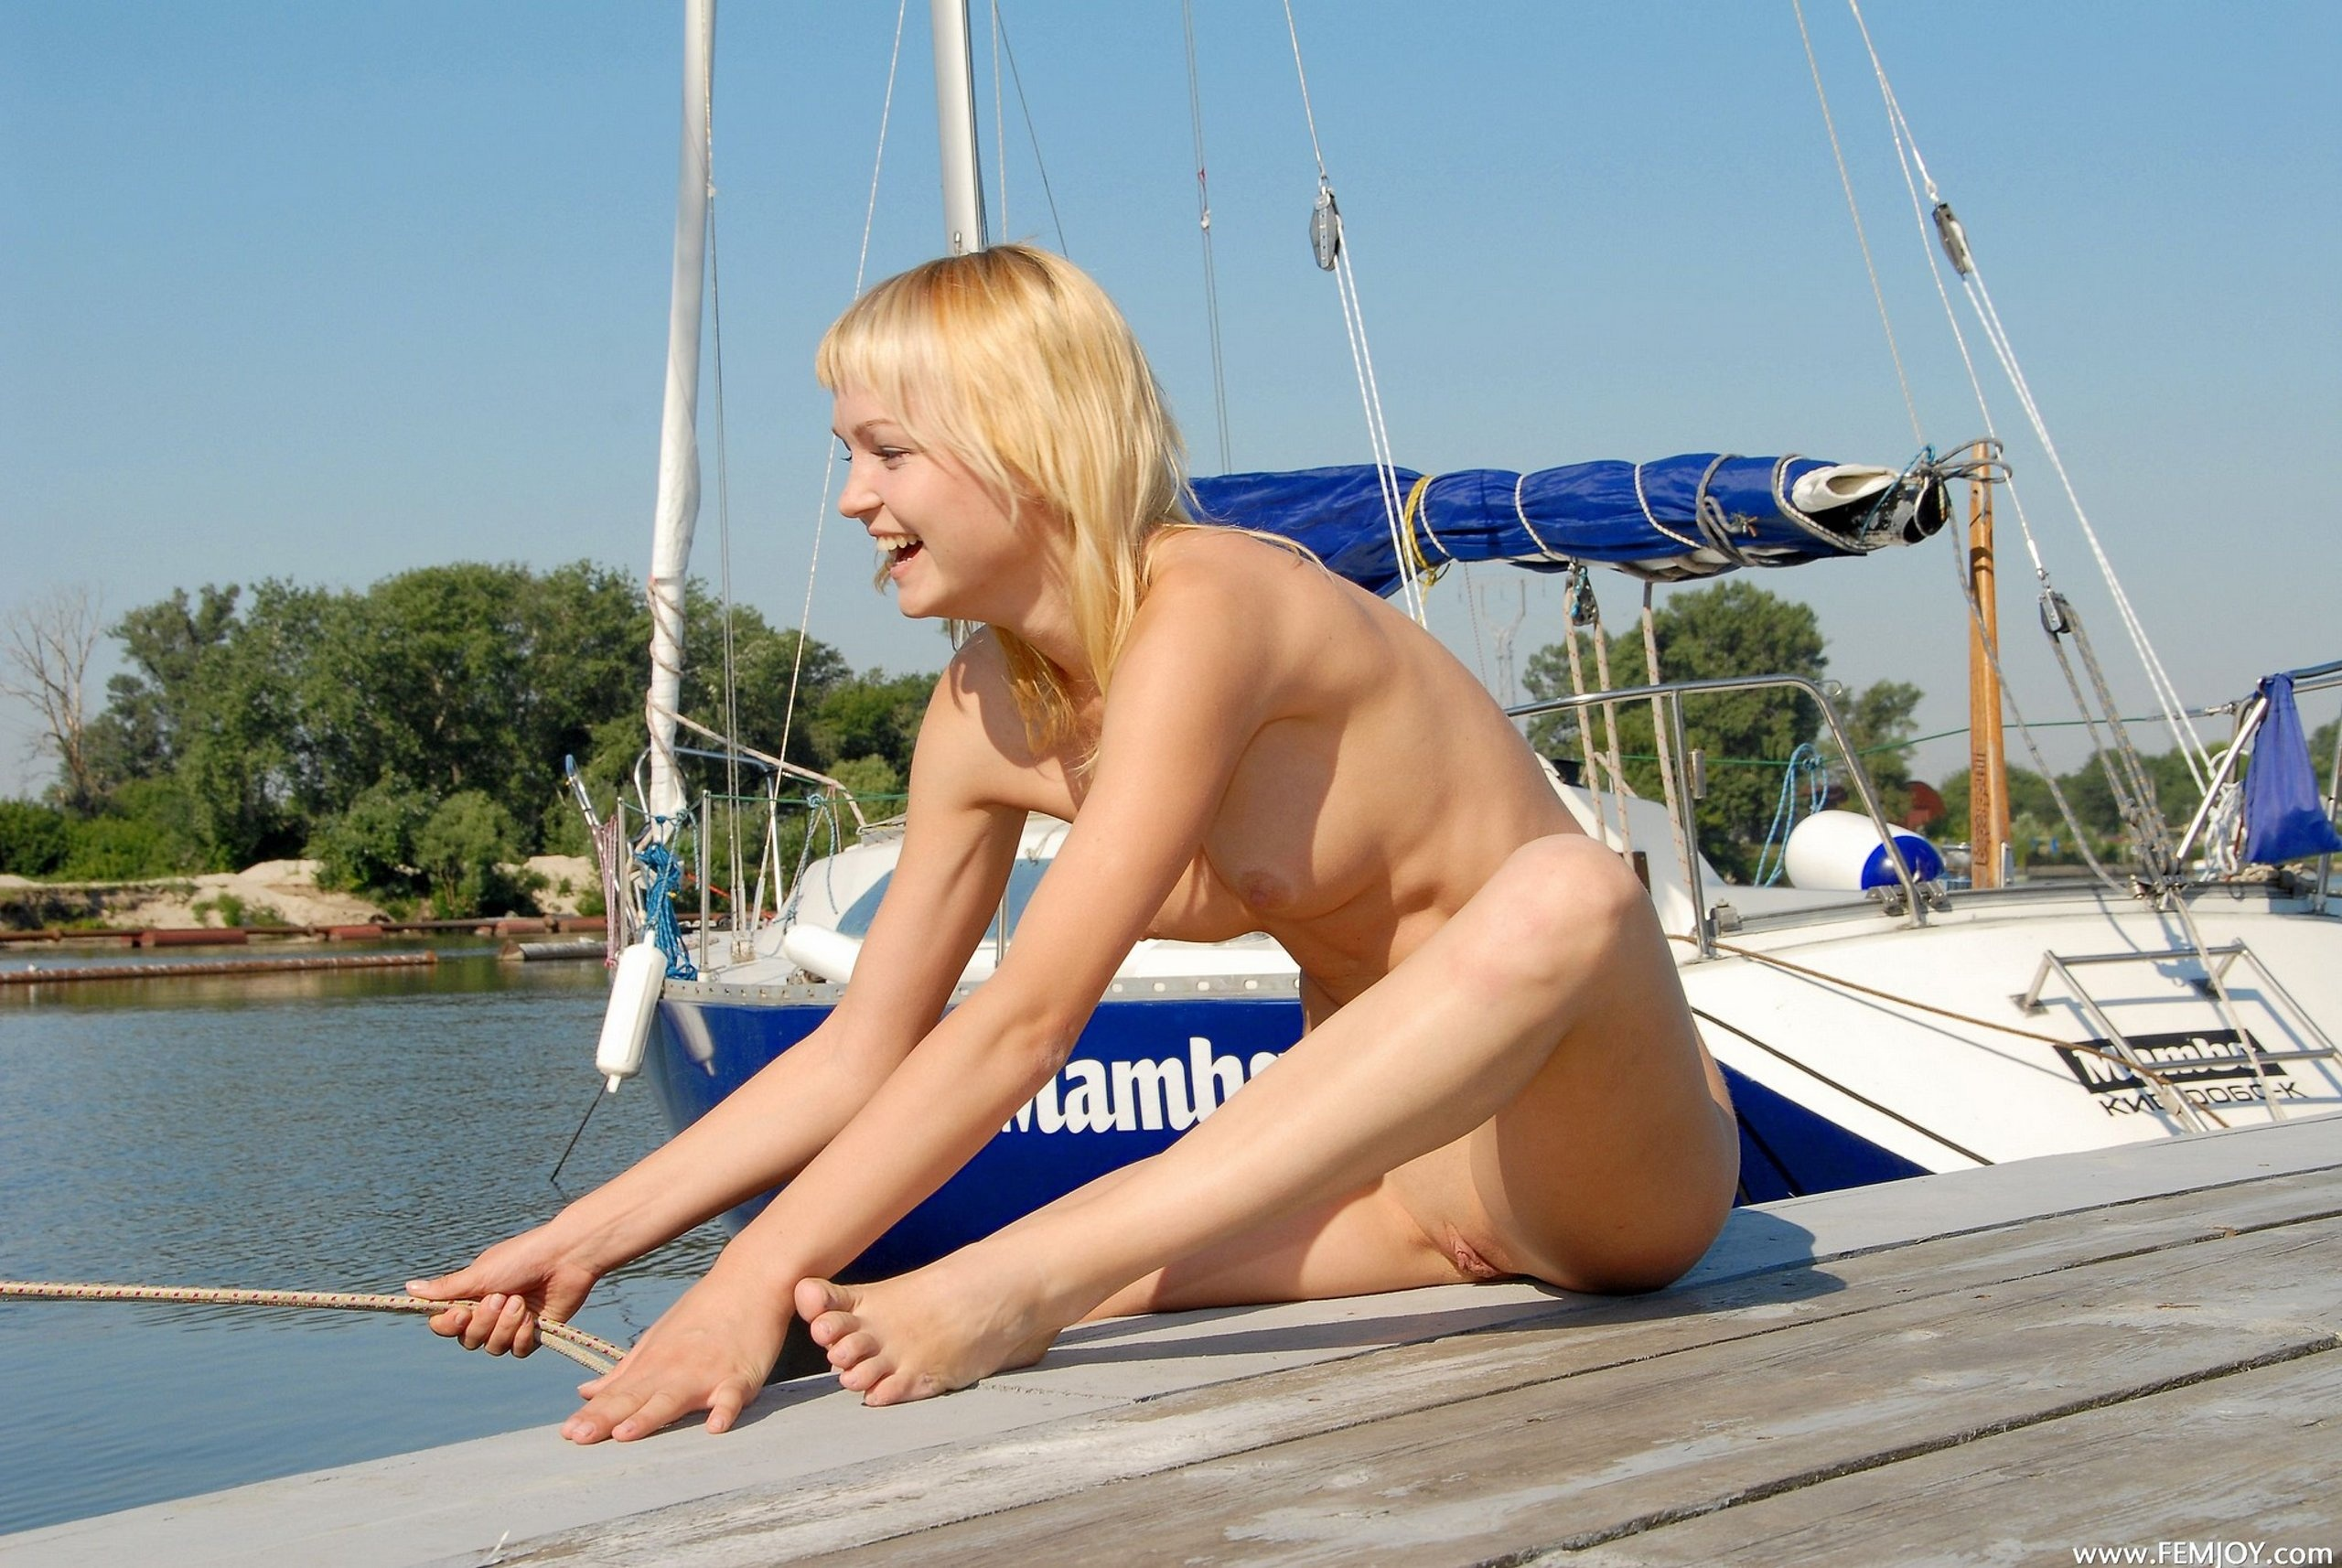 Apologise, Nude blondes on boats the